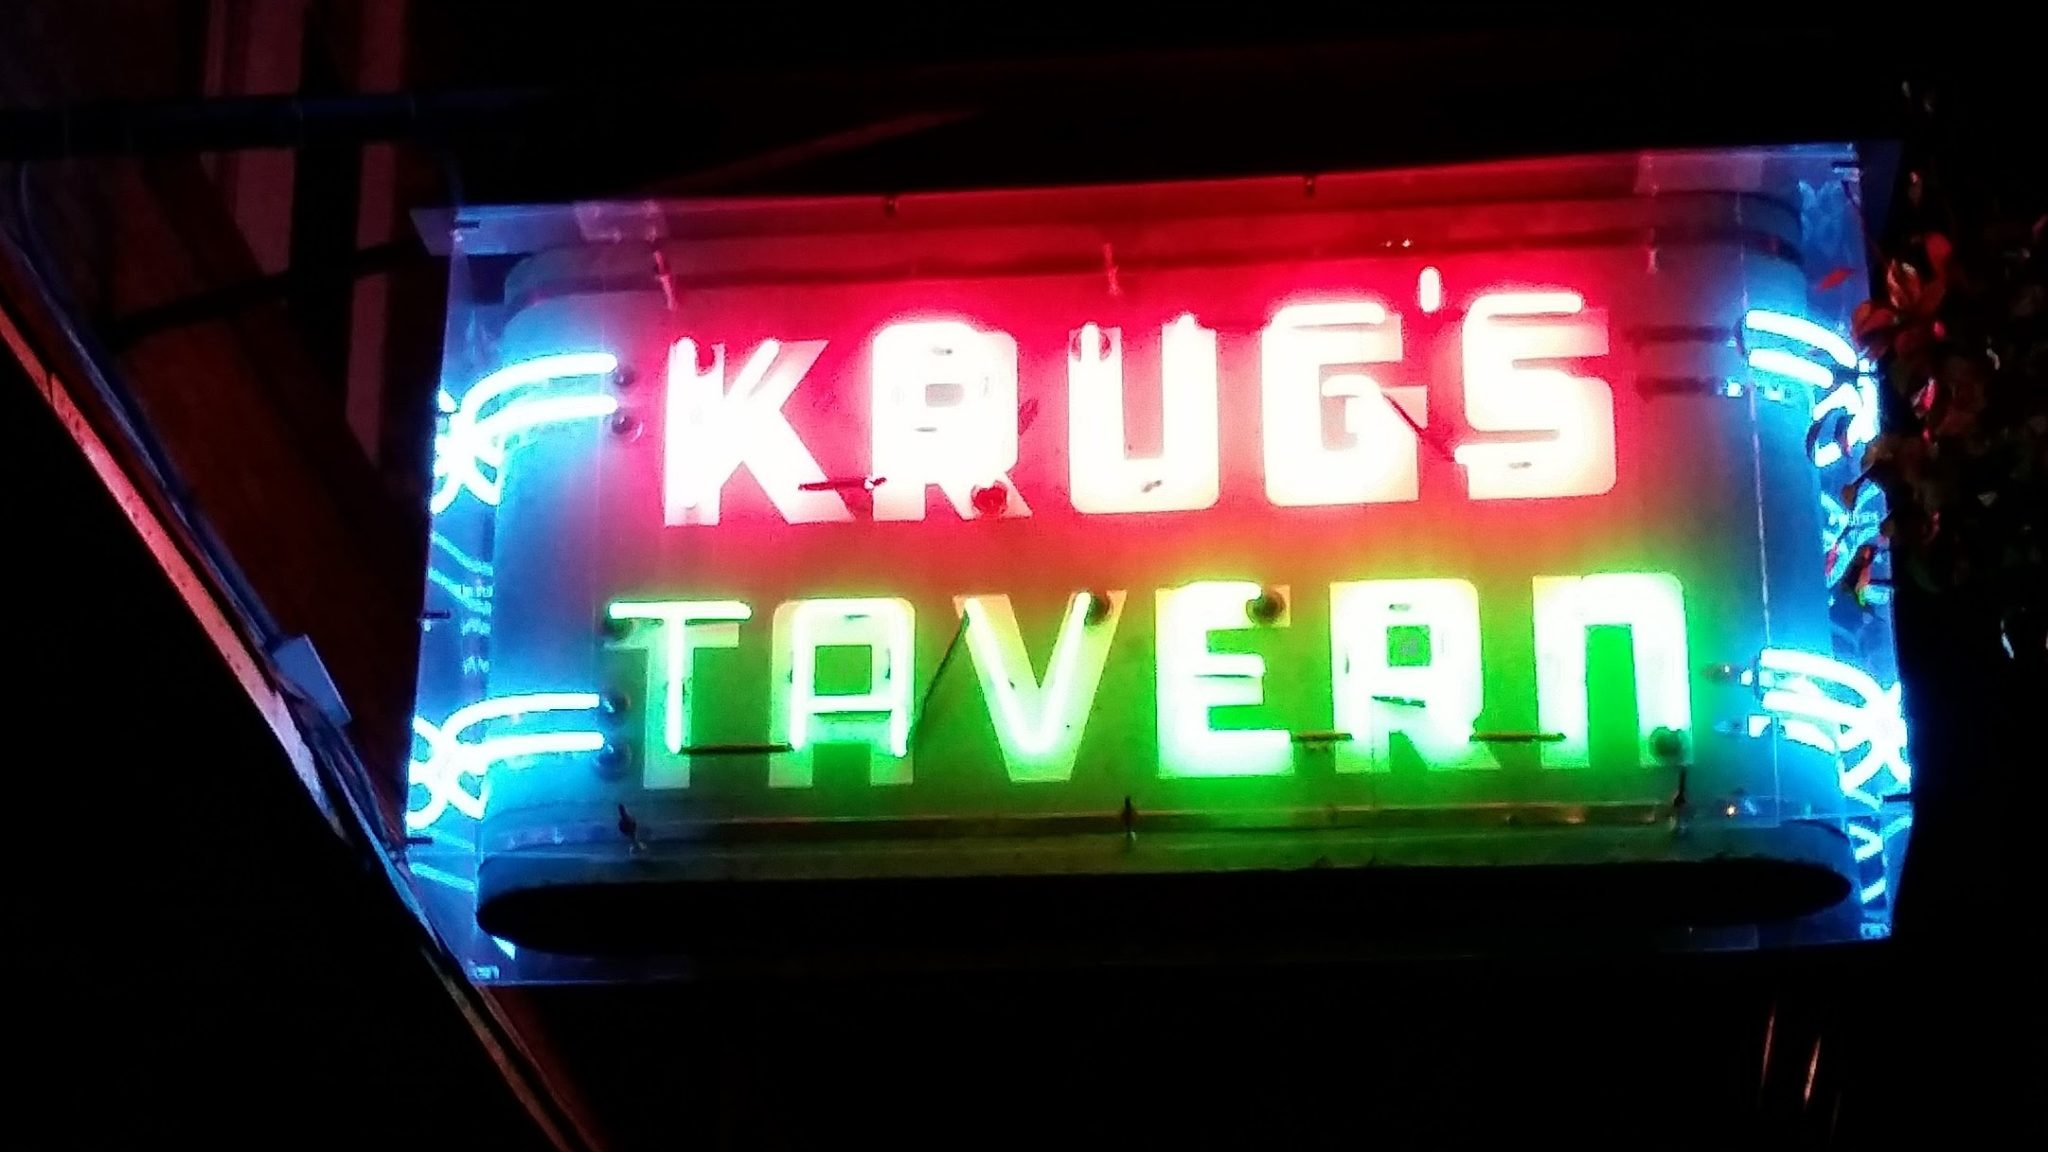 Krugs Tavern Newark - Mr Local History #1 pick